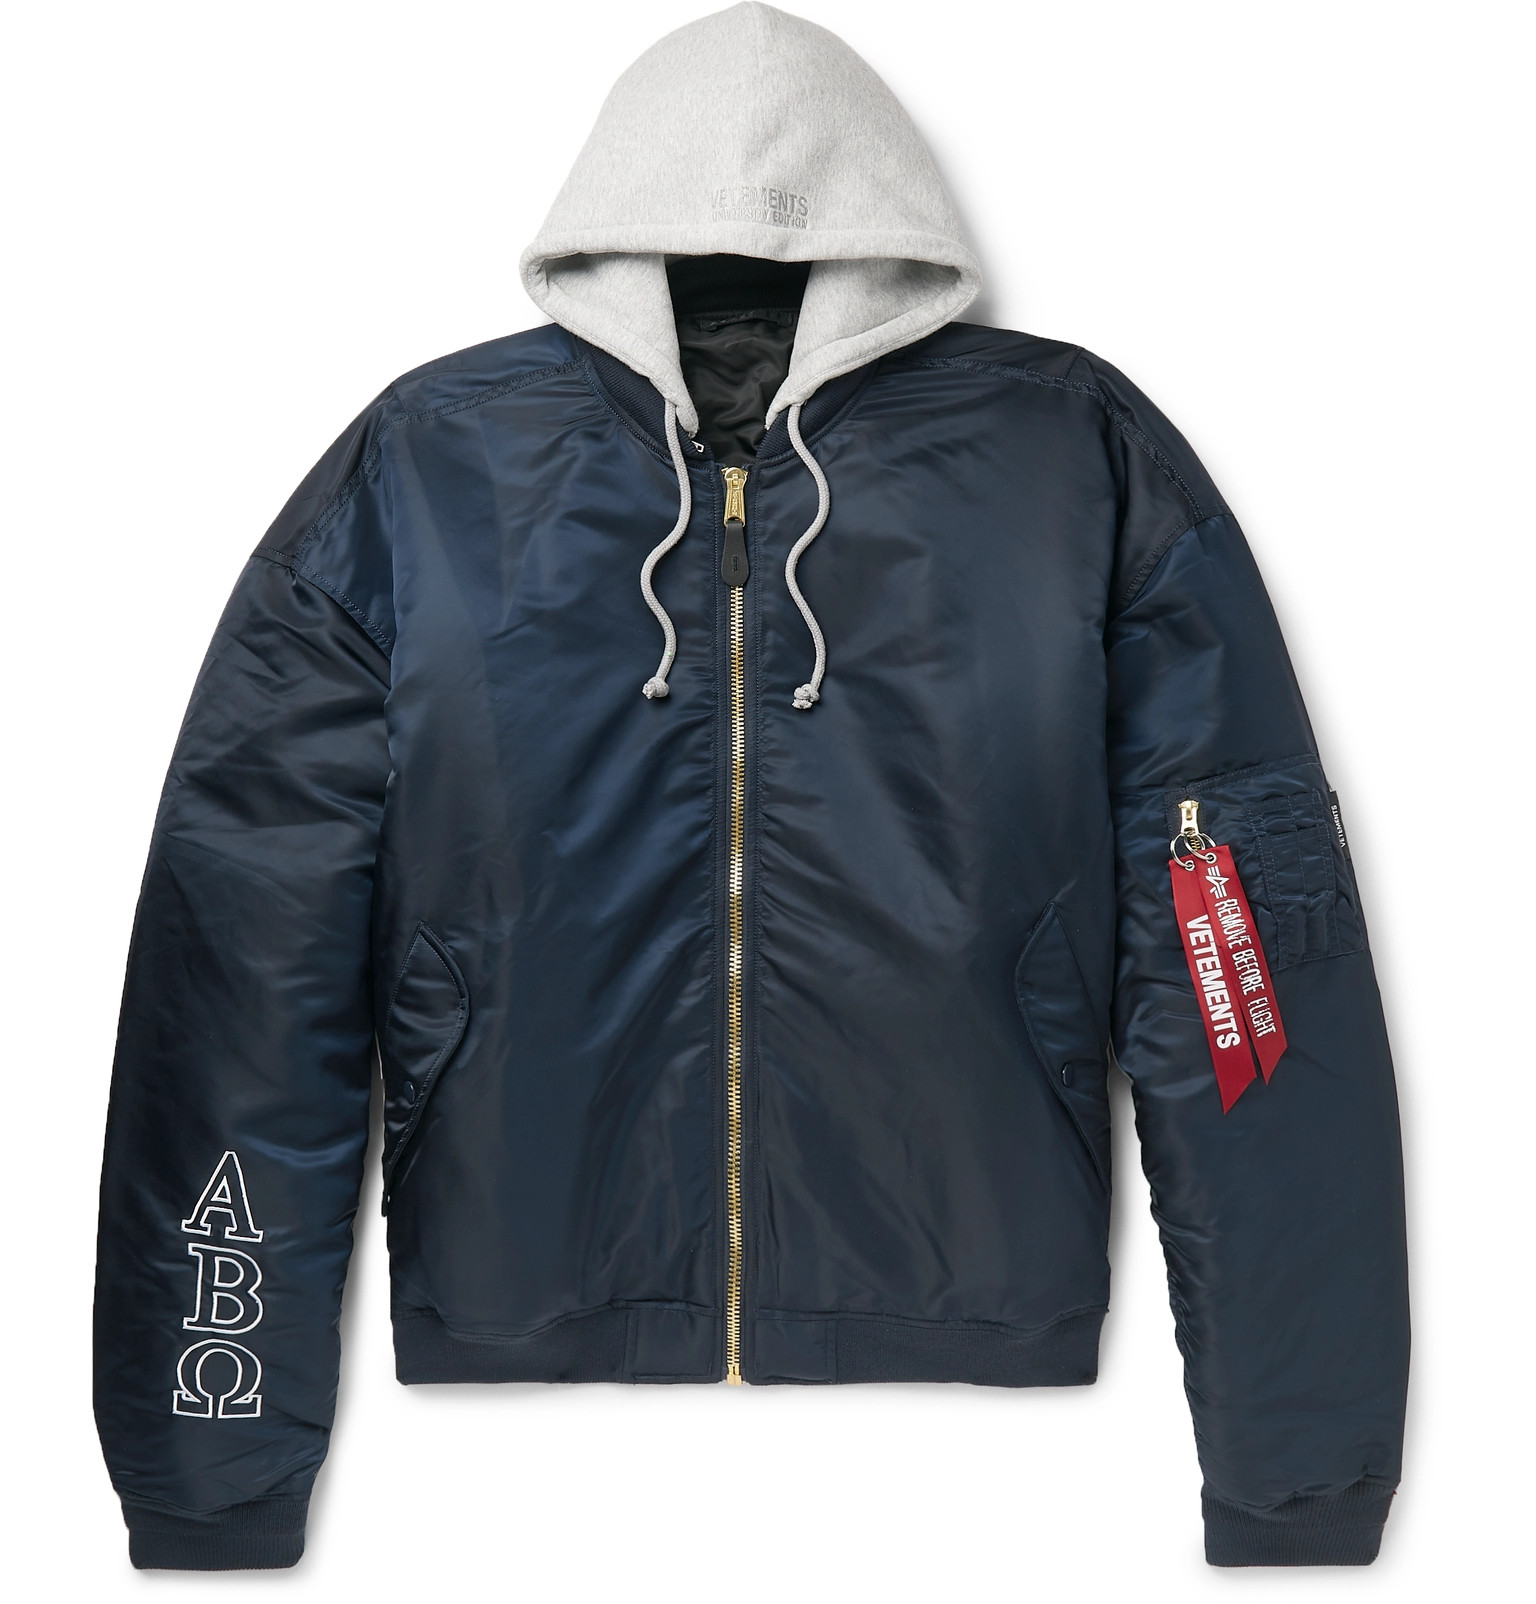 release date 3ef74 91f13 Vetements - + Alpha Industries Oversized Reversible ...